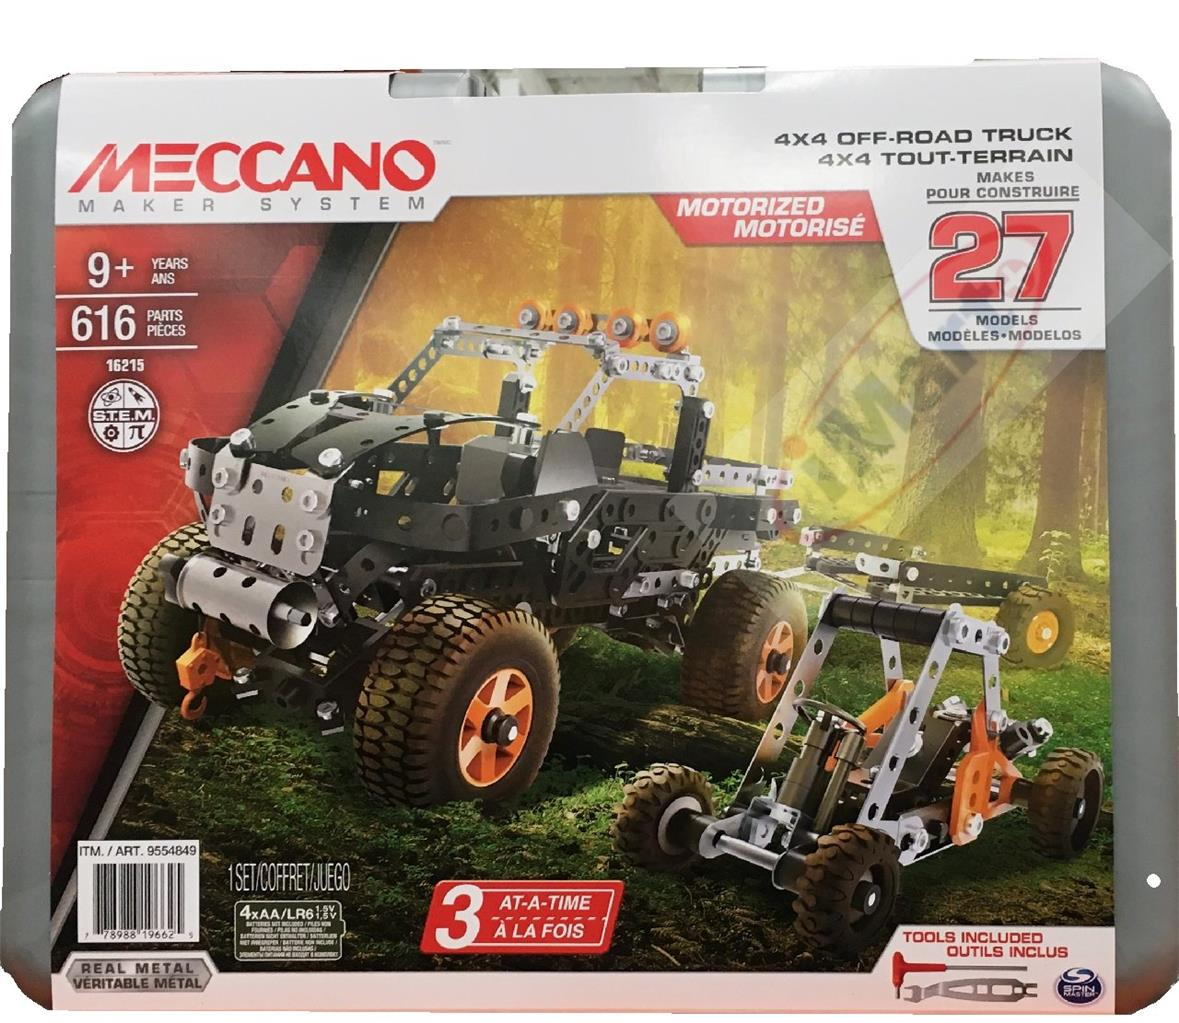 Best Meccano Sets And Toys For Kids : Meccano off road truck models pieces set kids